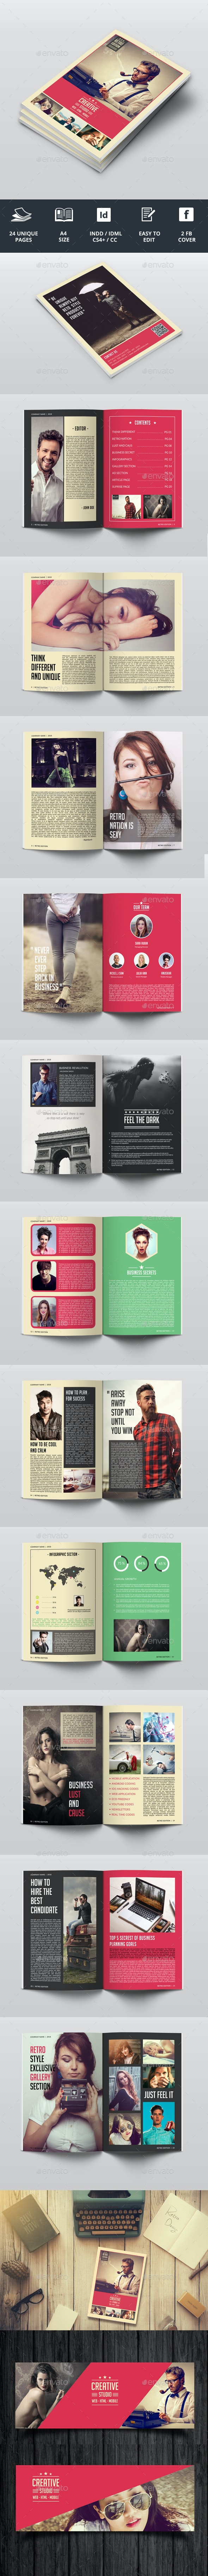 Retro Style Indesign Newsletter - Newsletters Print Templates